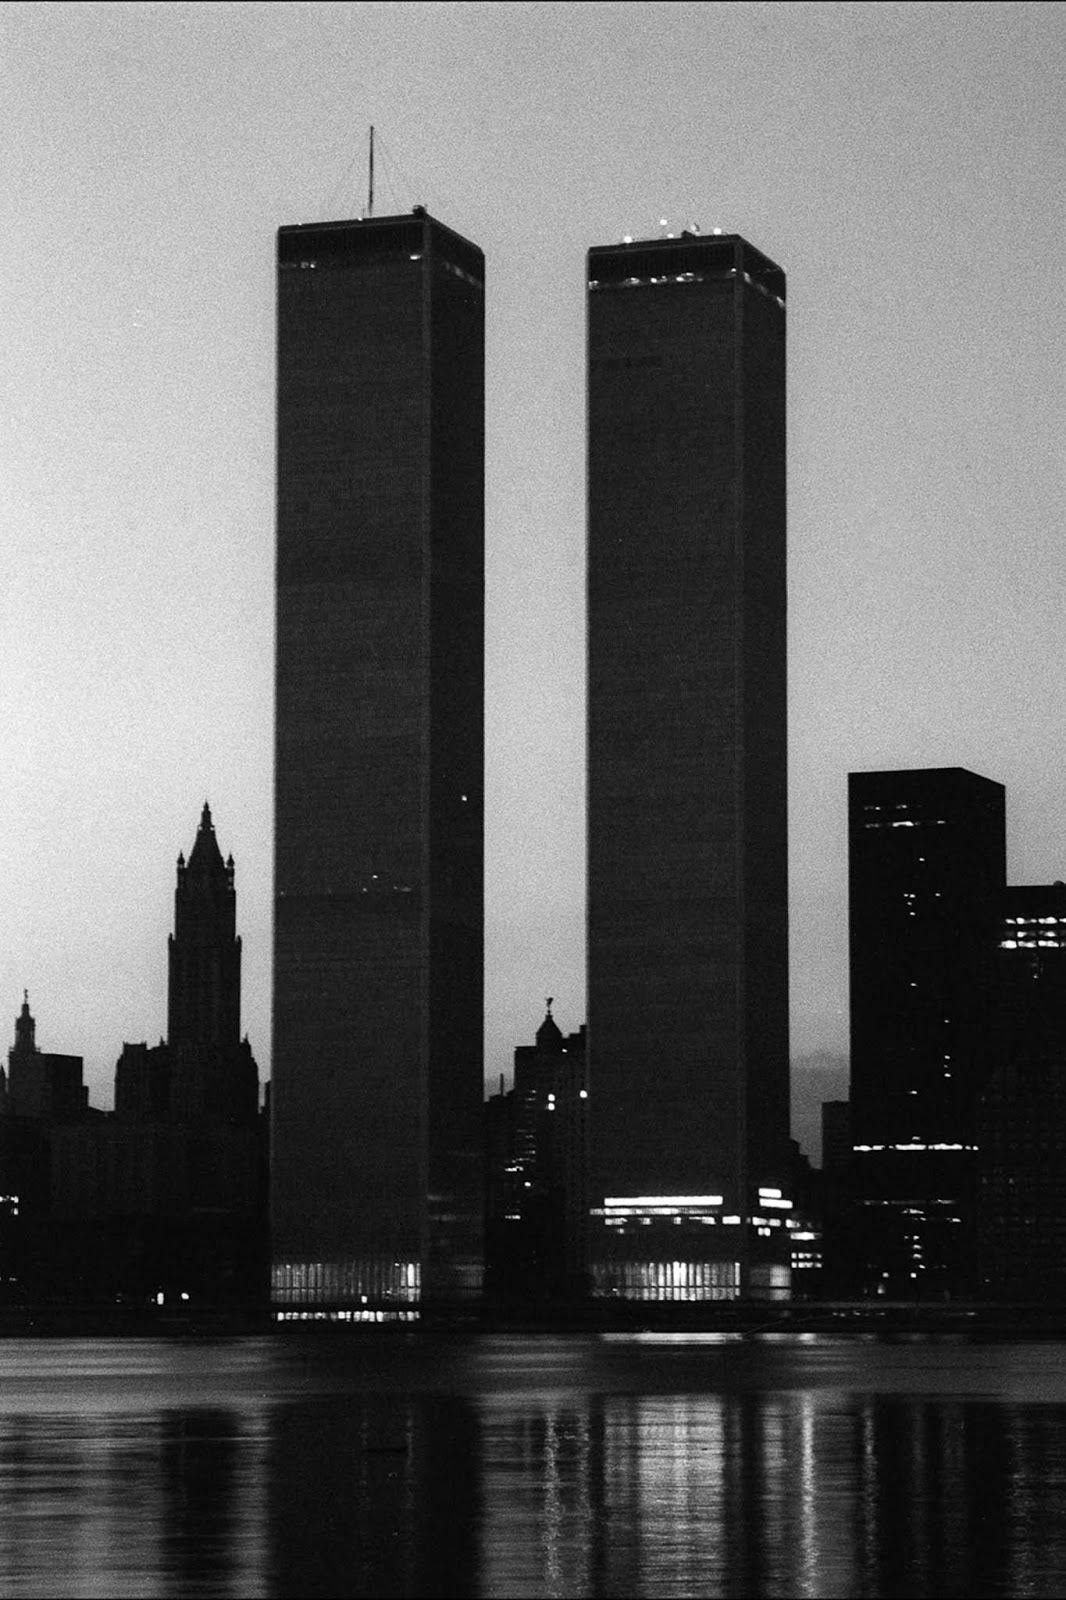 The World Trade Center.